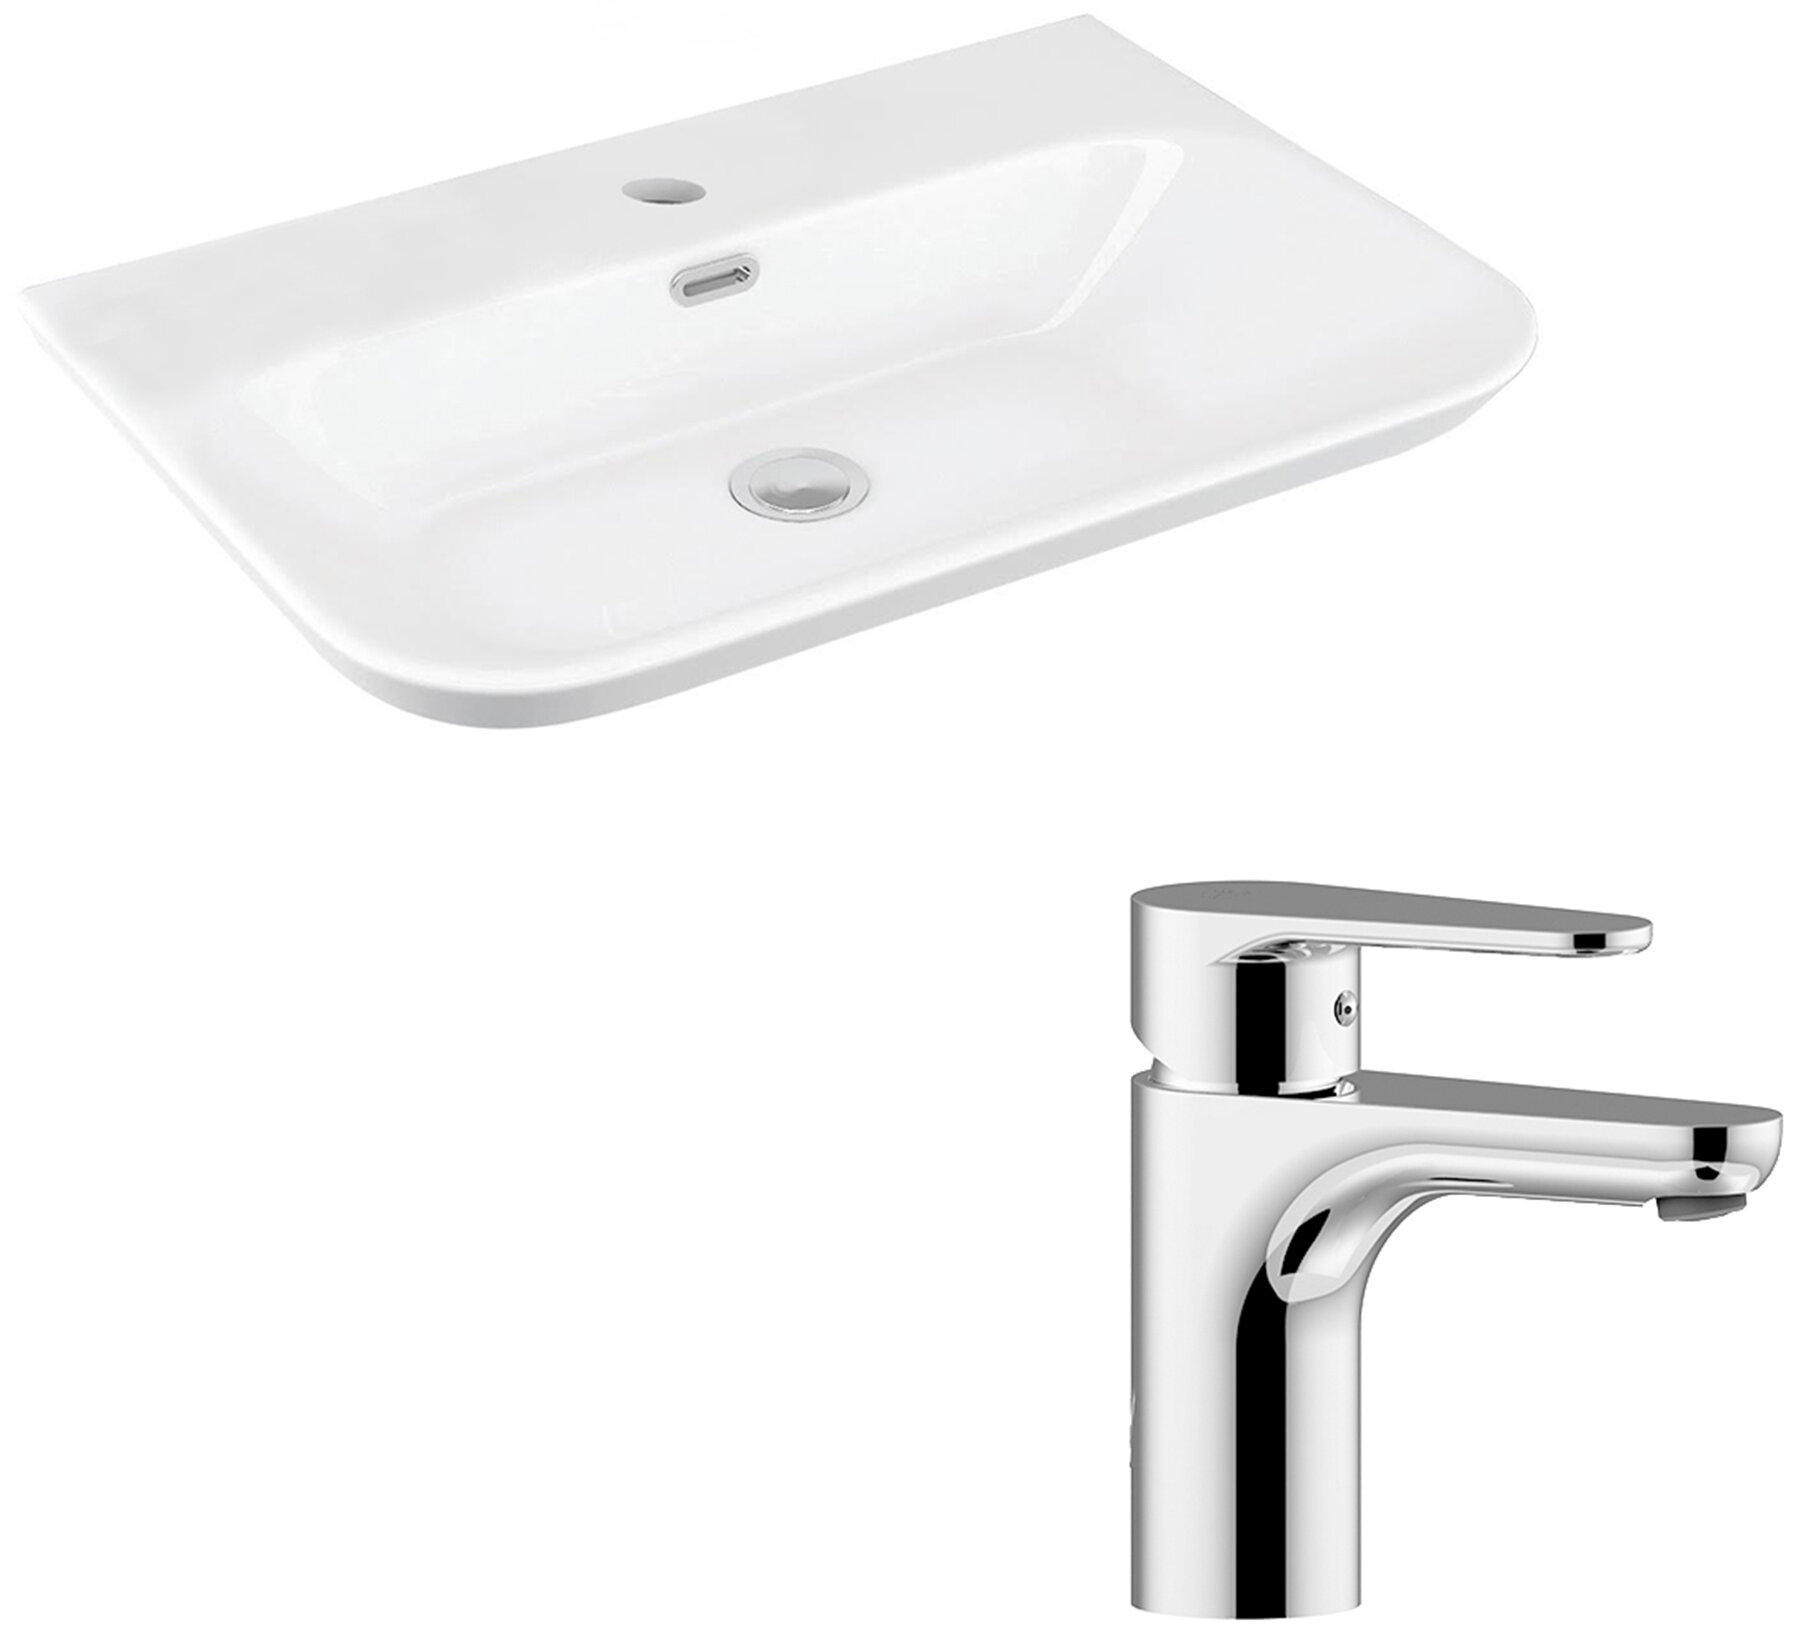 Ws Bath Collections Edge Ceramic Ceramic U Shaped Vessel Bathroom Sink With Faucet And Overflow Wayfair